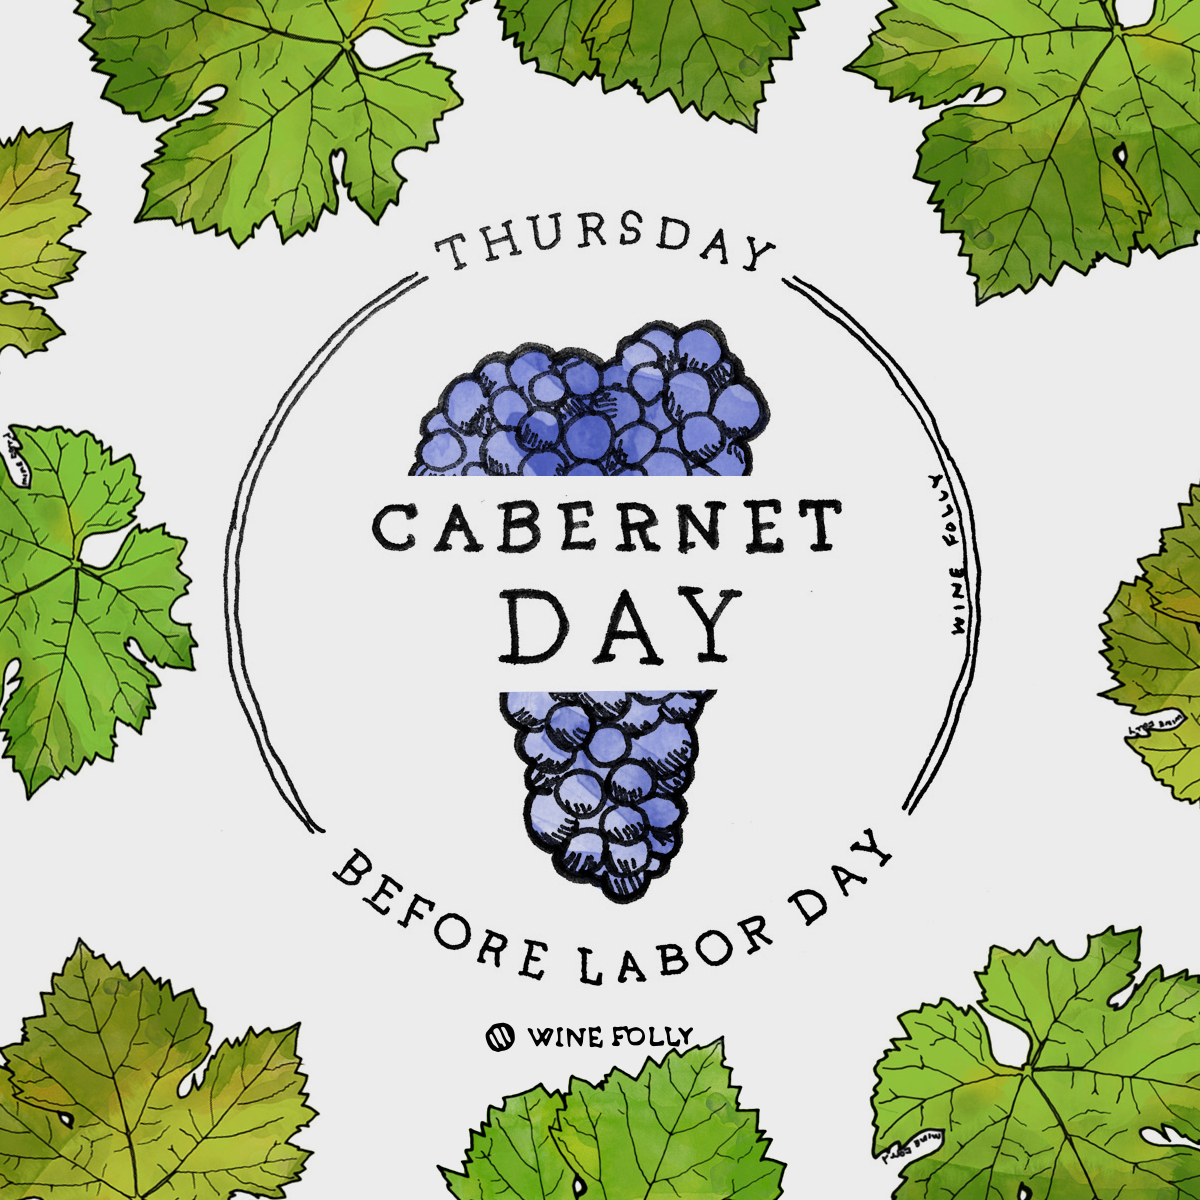 An illustration for Cabernet Day.